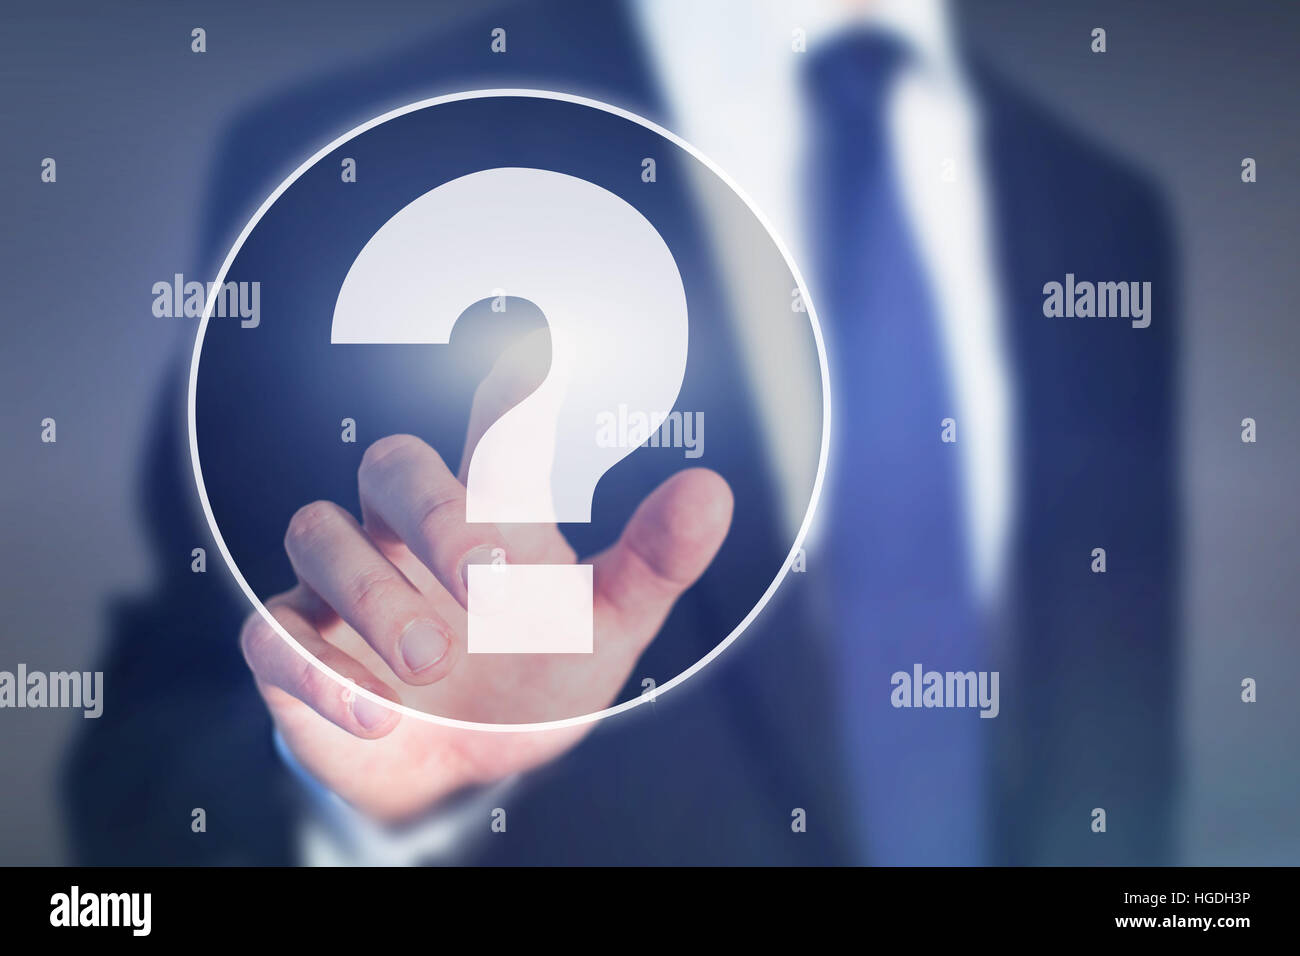 question mark, business help concept on touch screen - Stock Image